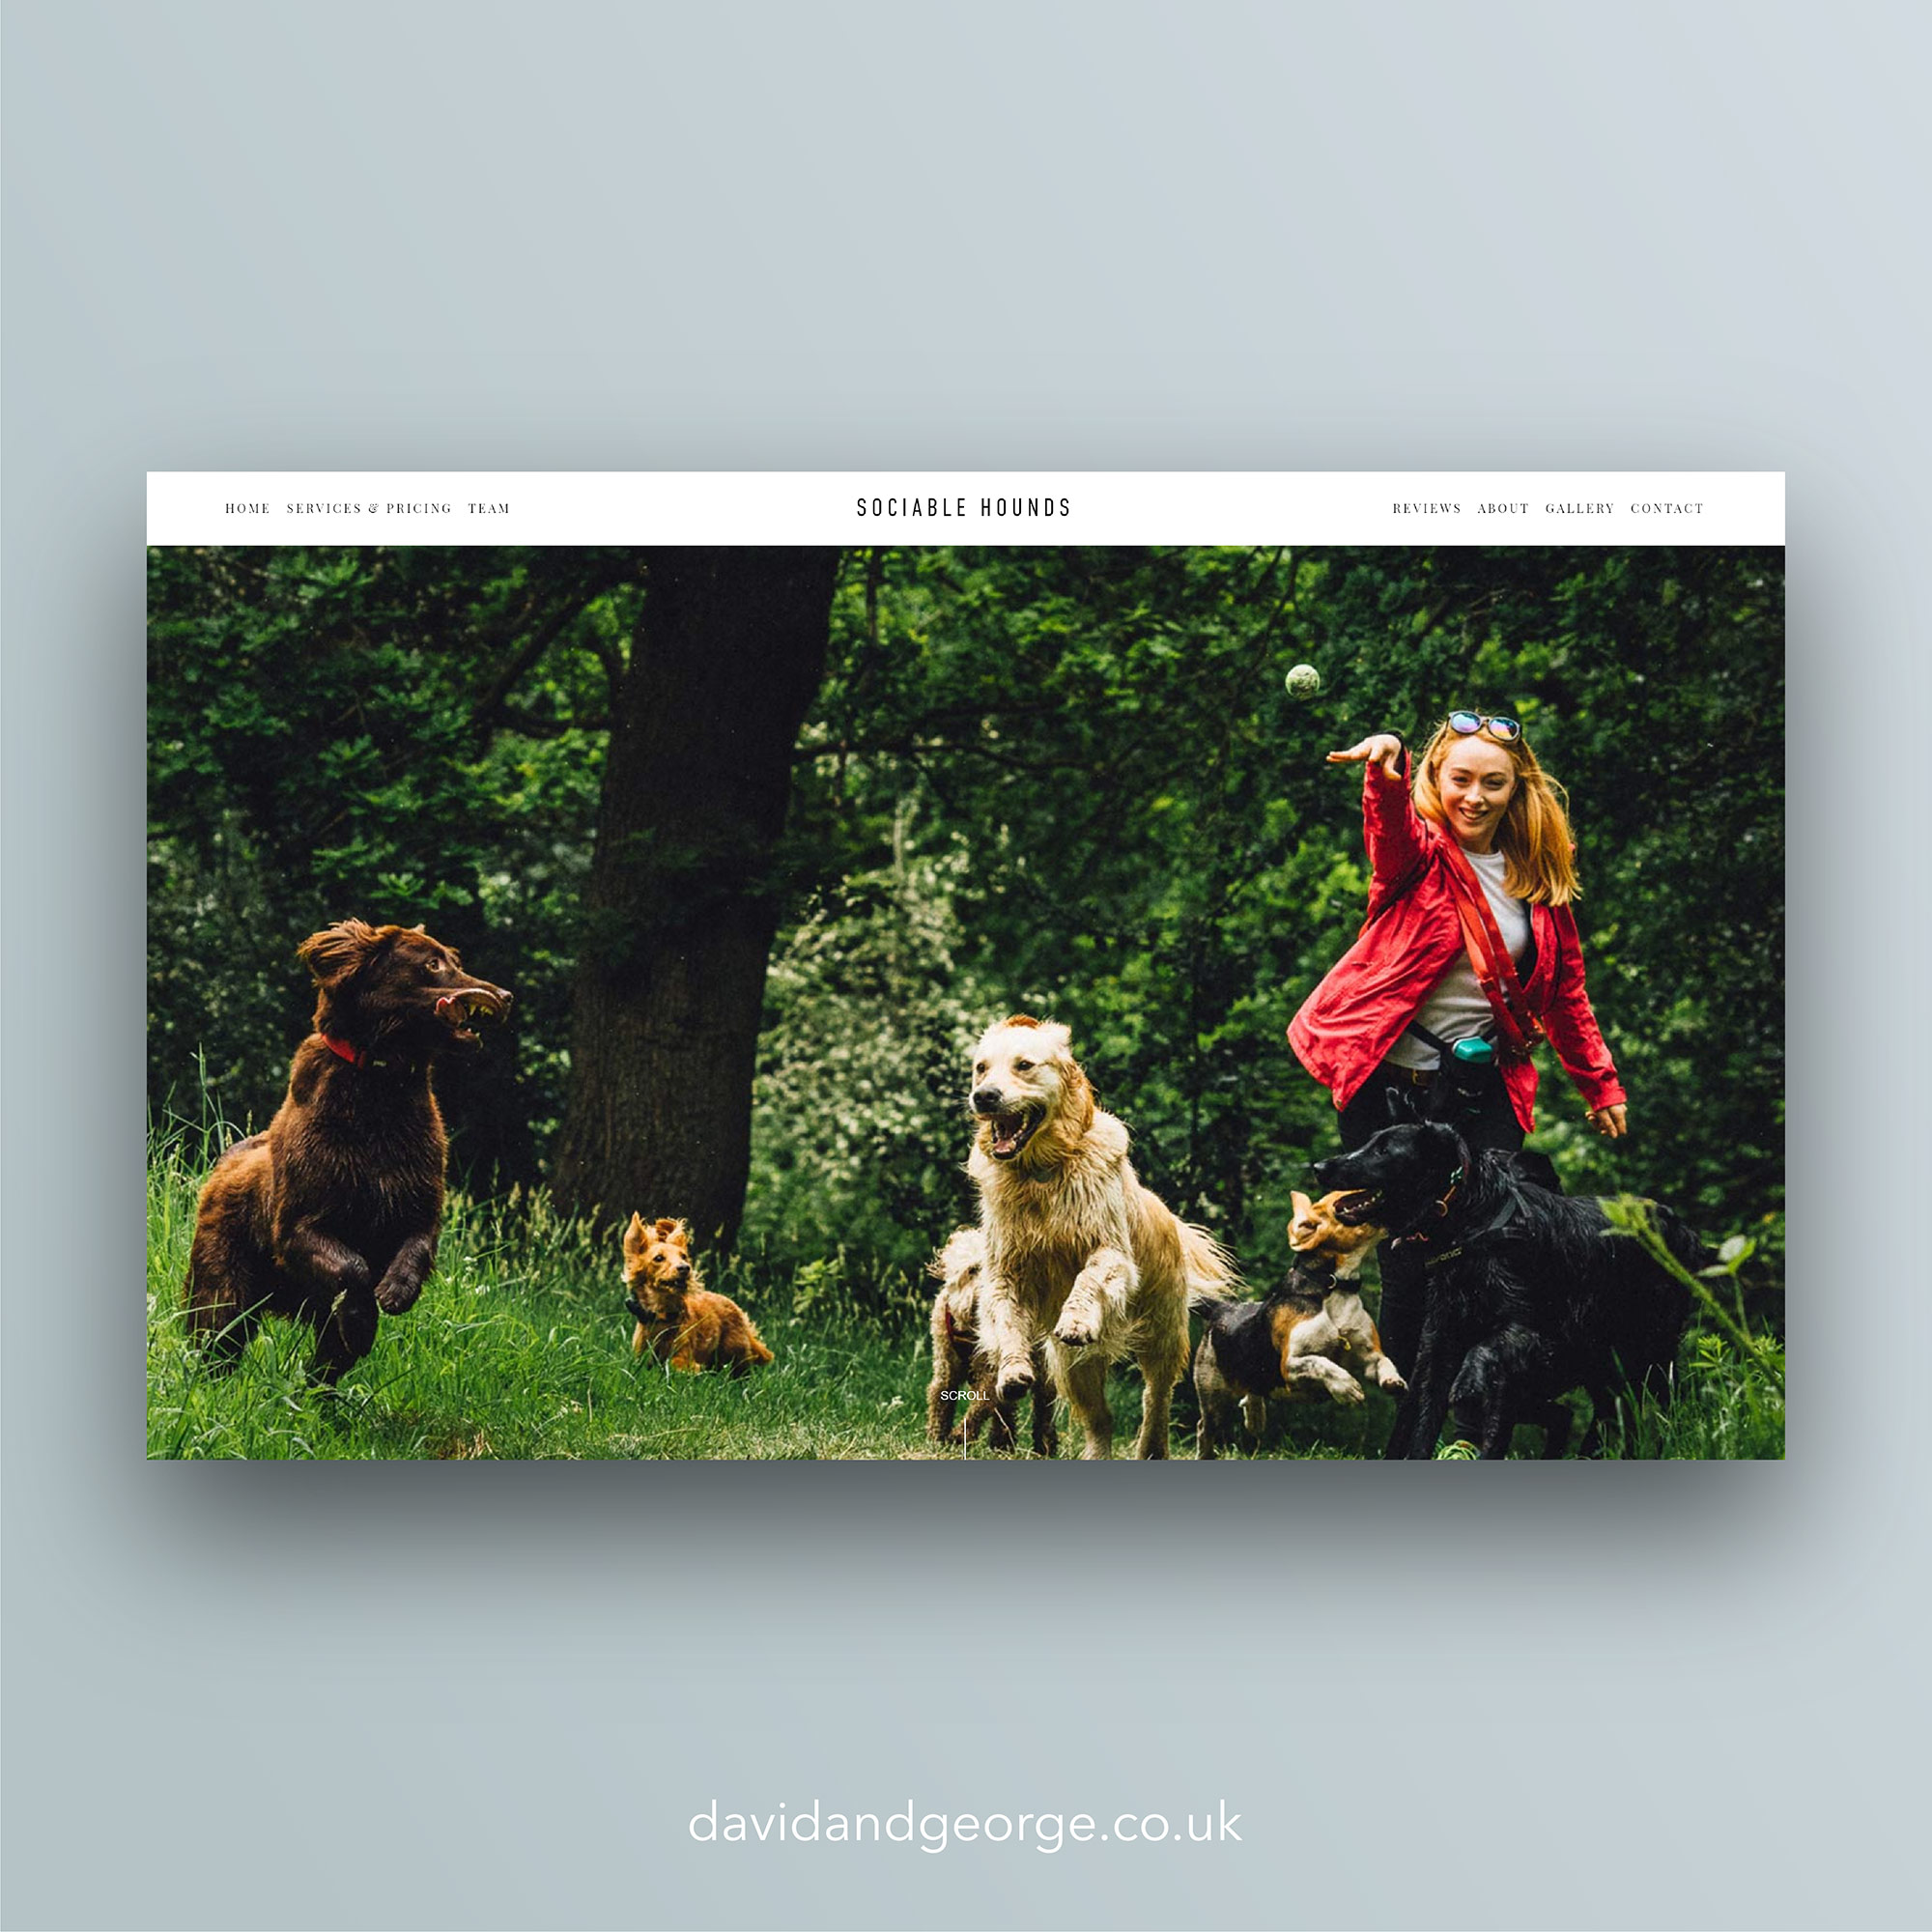 squarespace-website-design-london-edinburgh-uk-david-and-george-sociable-hounds-dog-walking-service-edinburgh.jpg